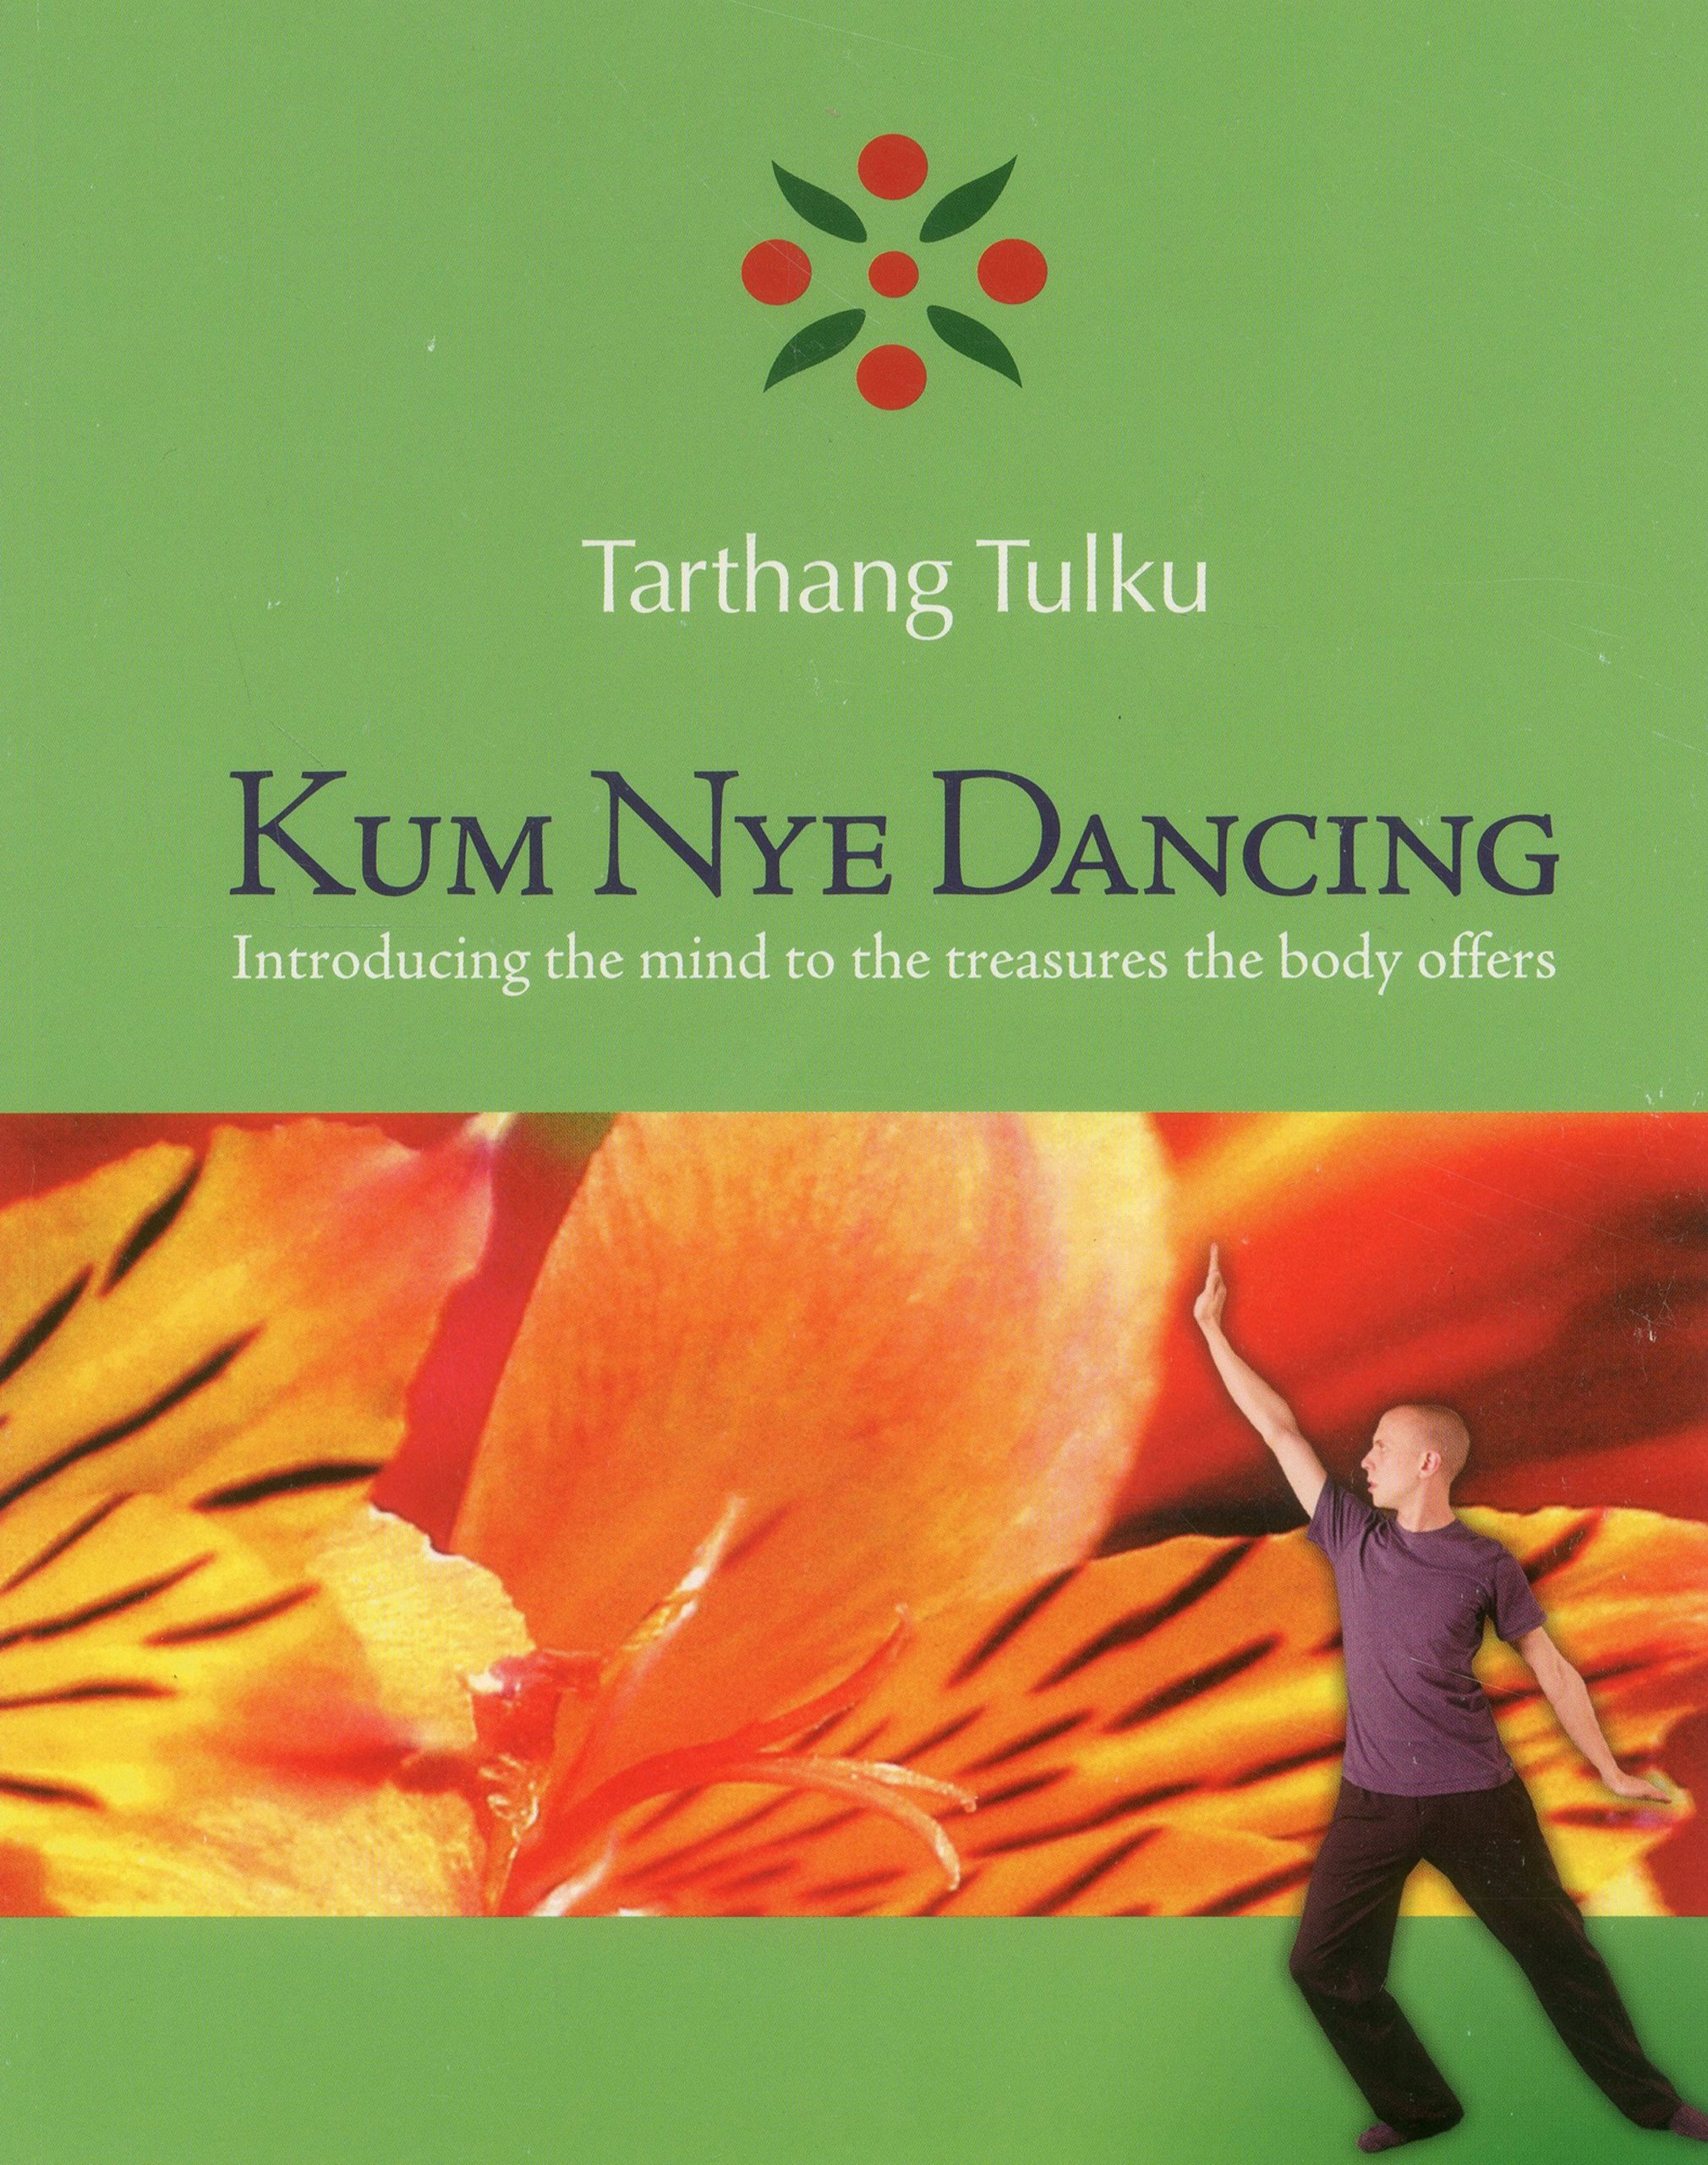 Kum Nye Dancing: Introducing the Mind to the Treasures the Body Offers PDF